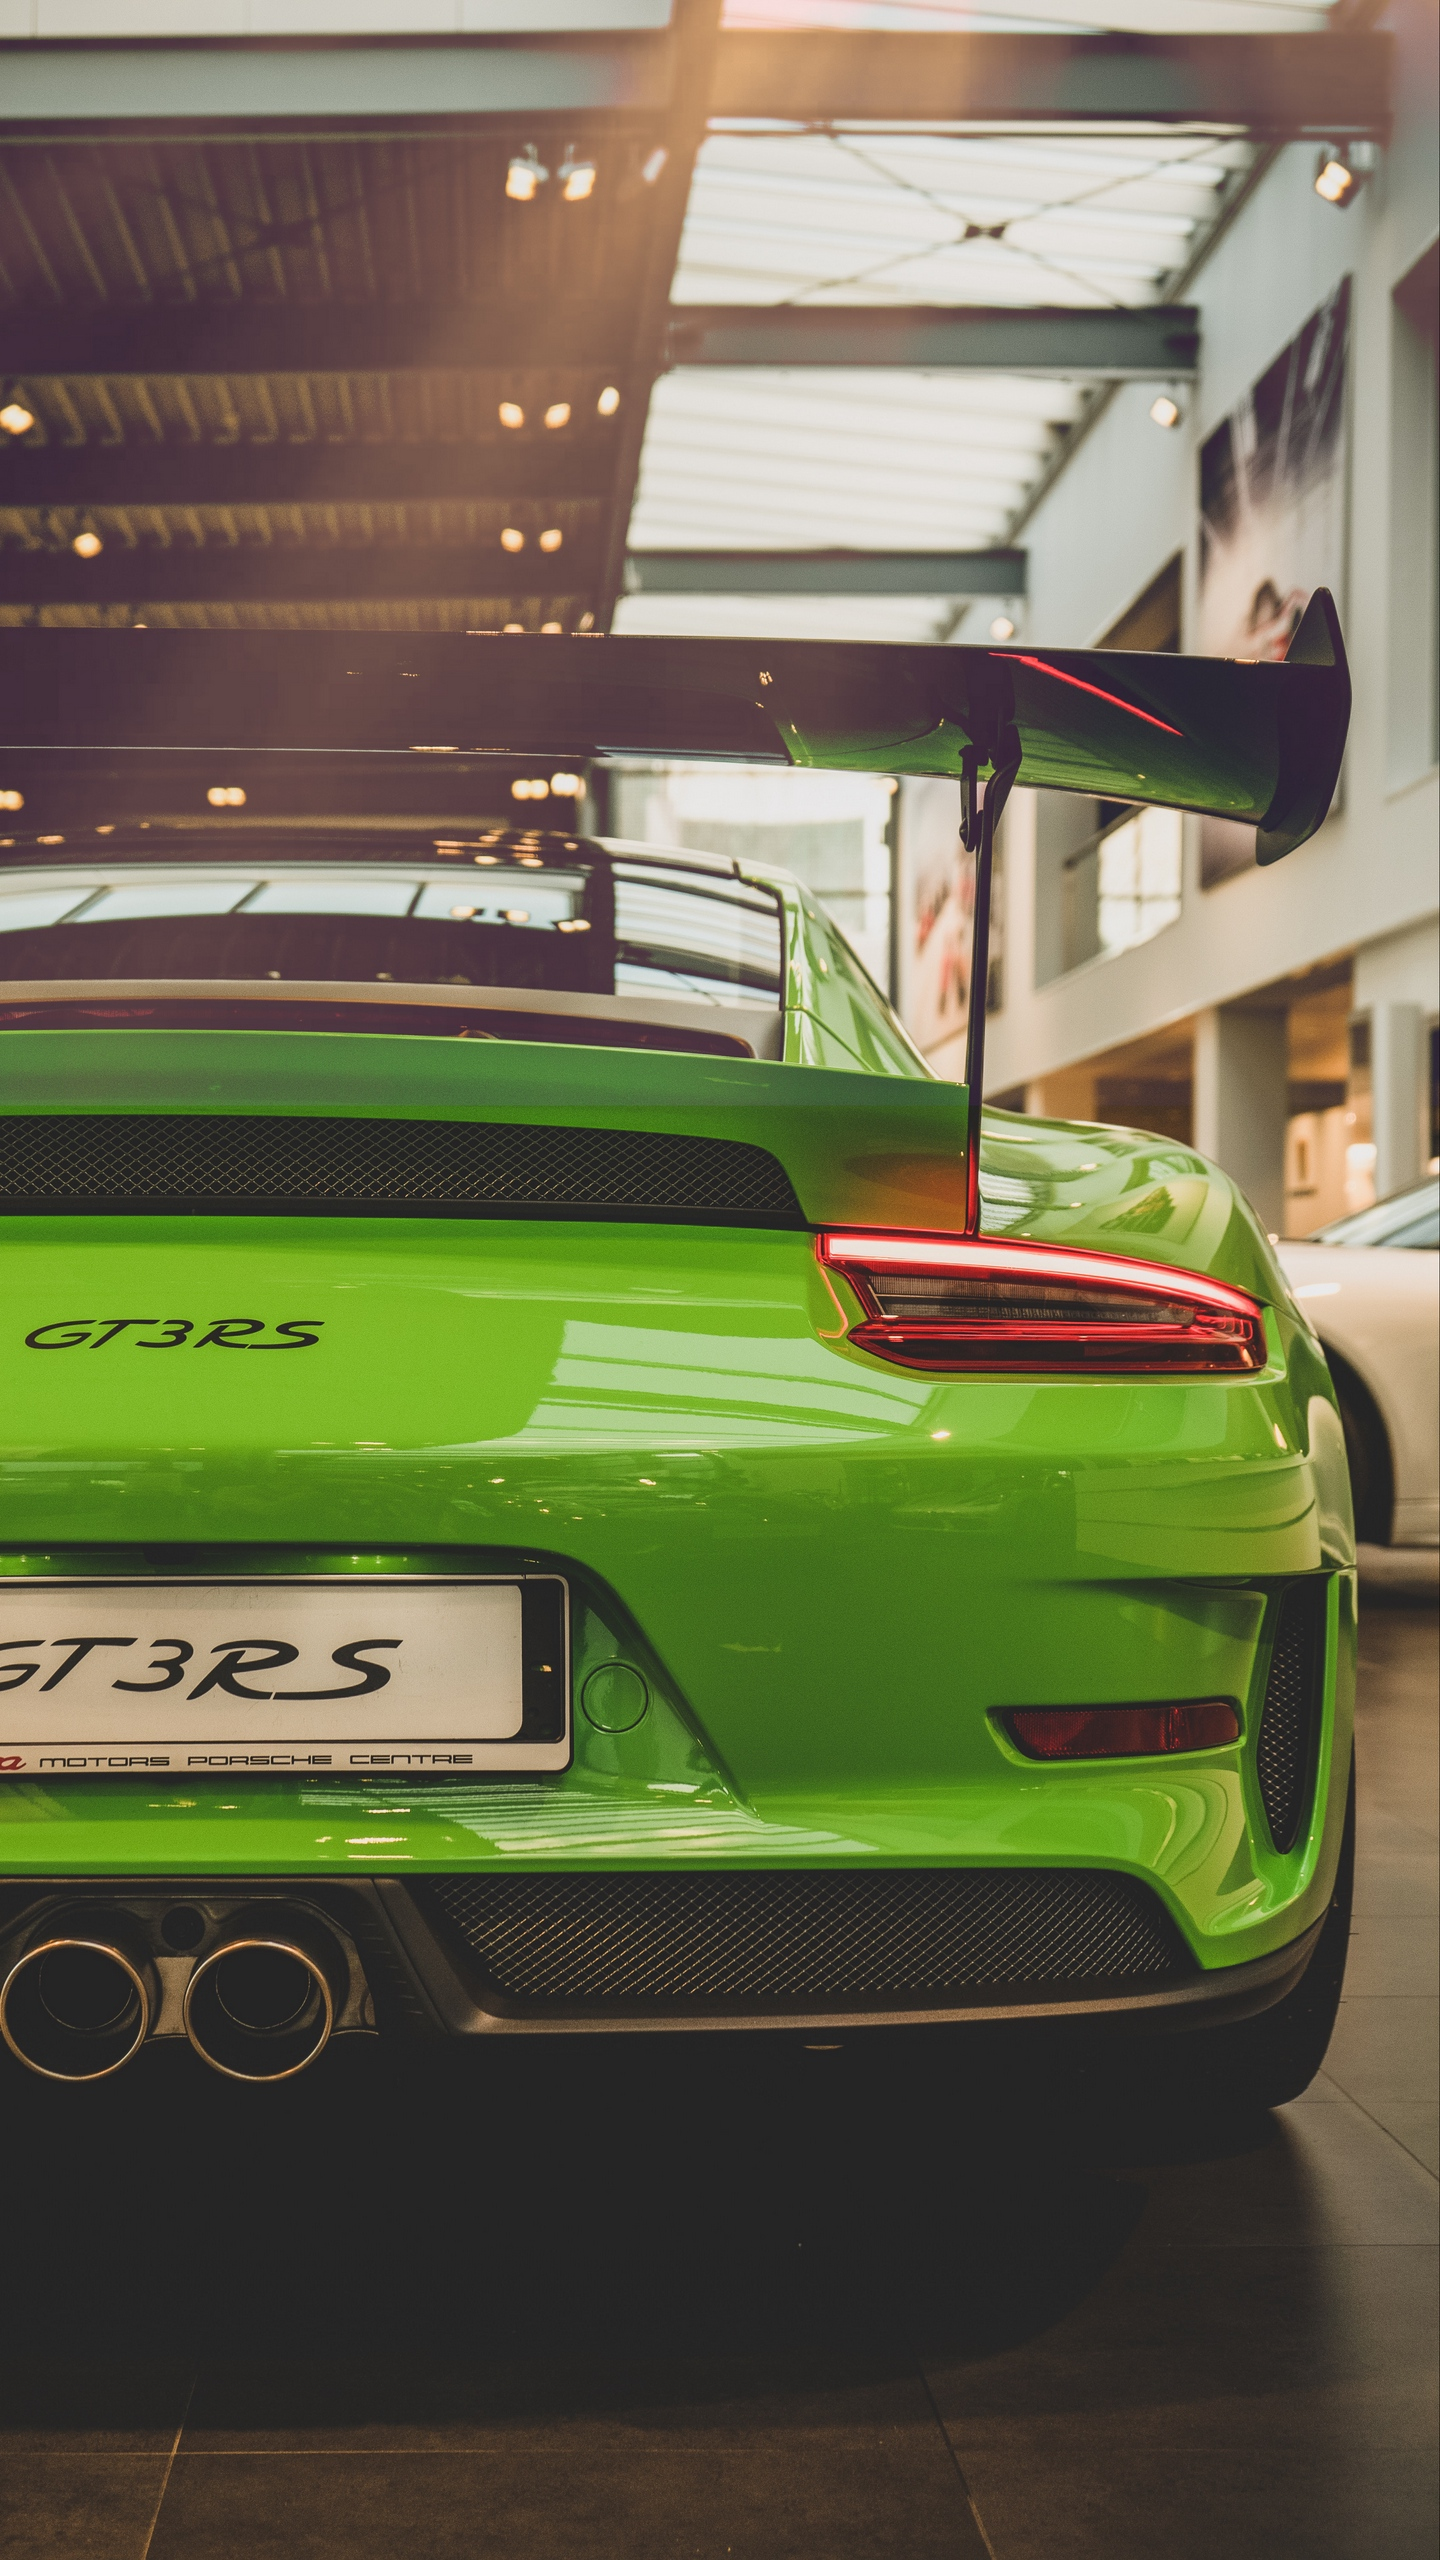 Download wallpaper 1440x2560 porsche 911 gt3 rs porsche 911 1440x2560